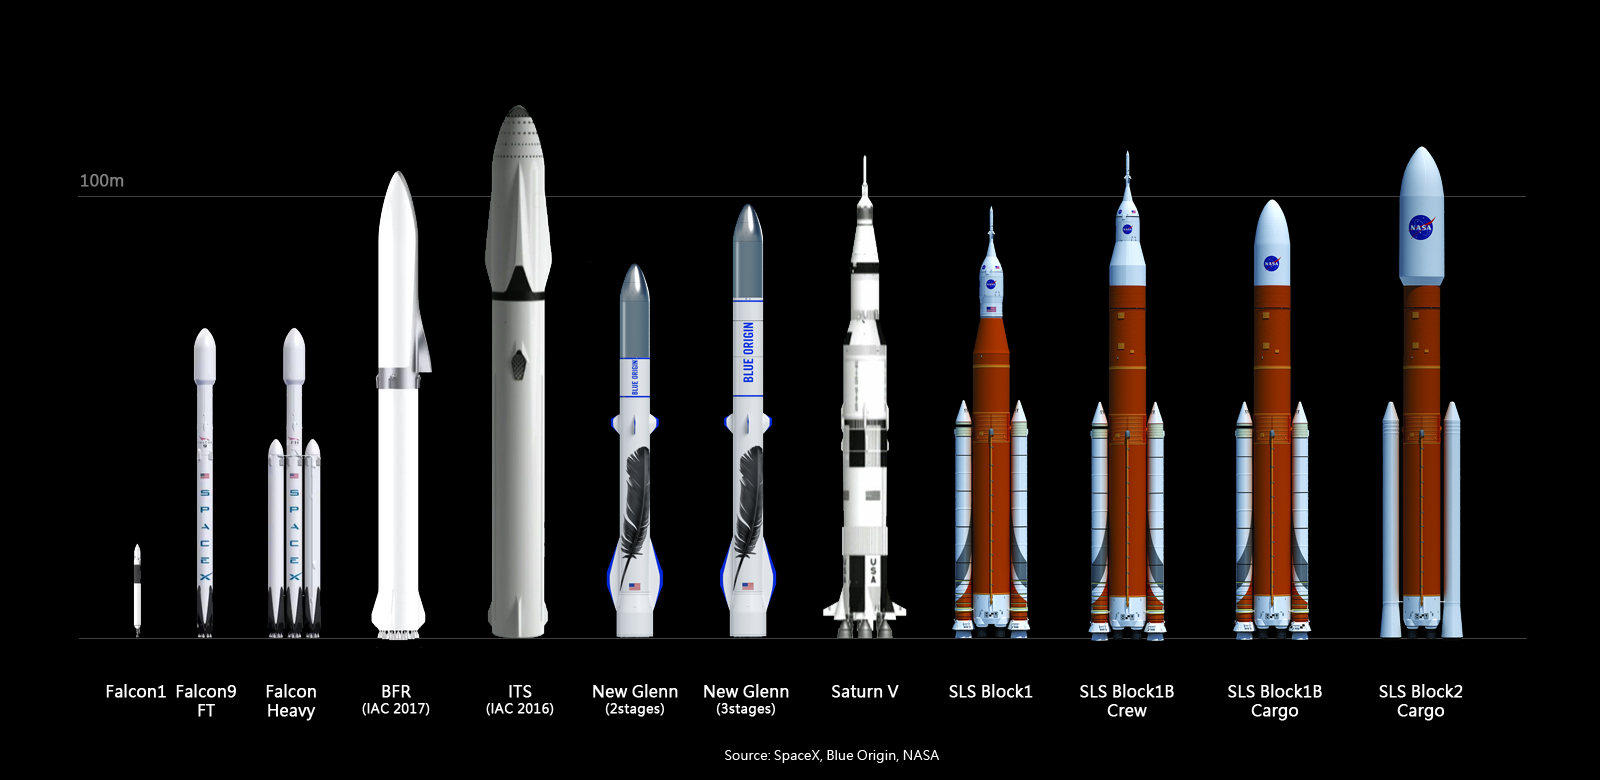 SpaceX's BFR compared to other launch vehicles. Image Credit: Thorenn